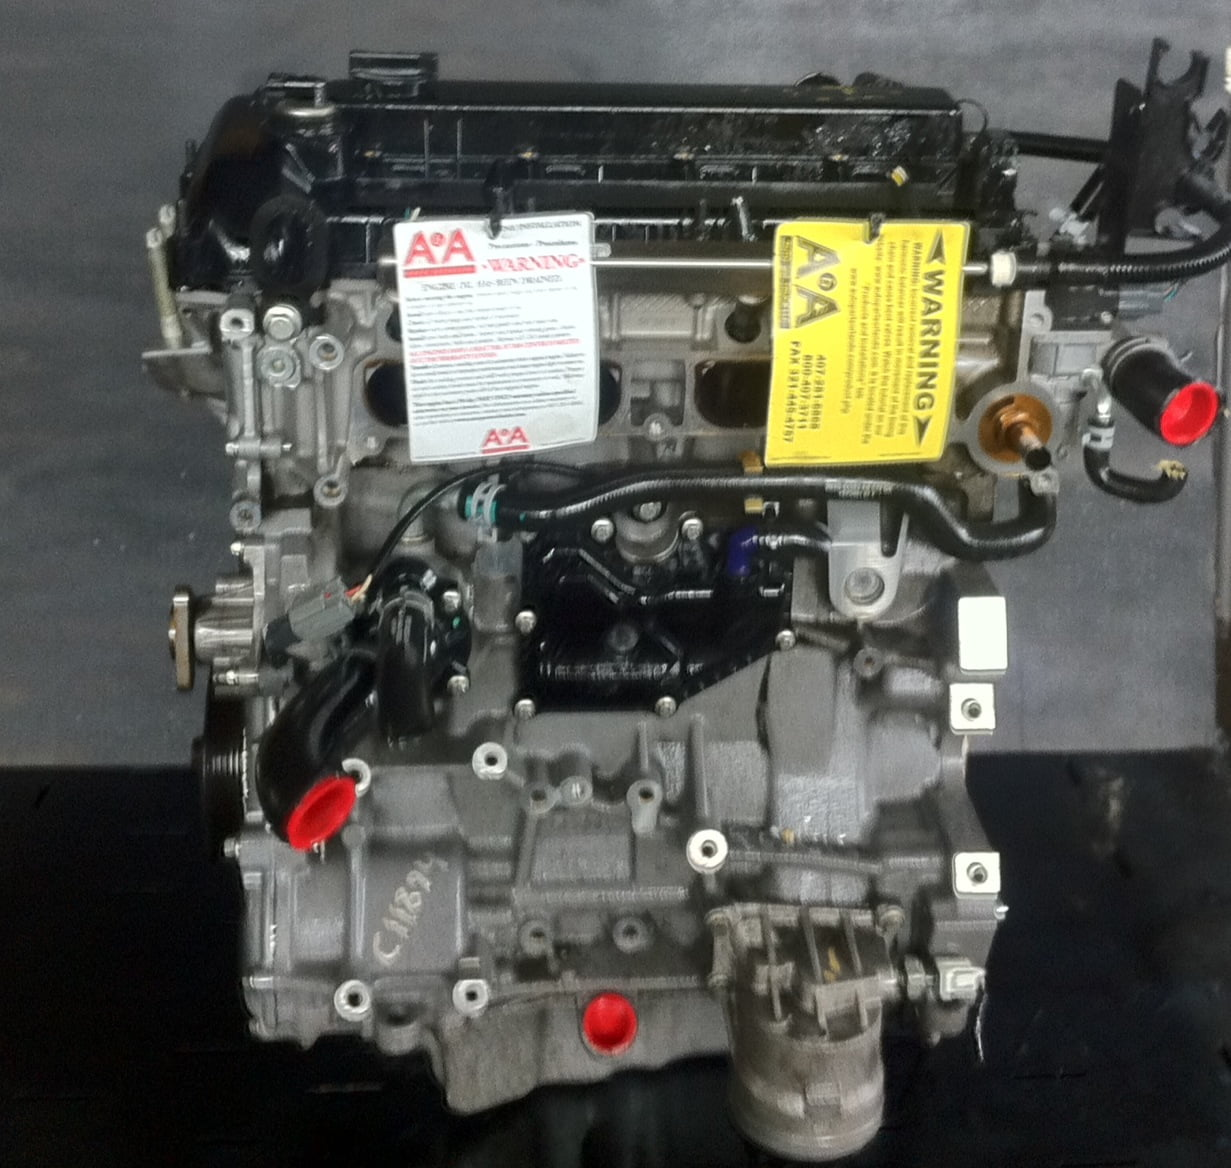 2009 bmw 535i engine diagram wiring library 1986 BMW 535I Engine Diagram 2007 mazda 5 engine diagram schematics wiring diagrams u2022 rh parntesis co mazda cx 7